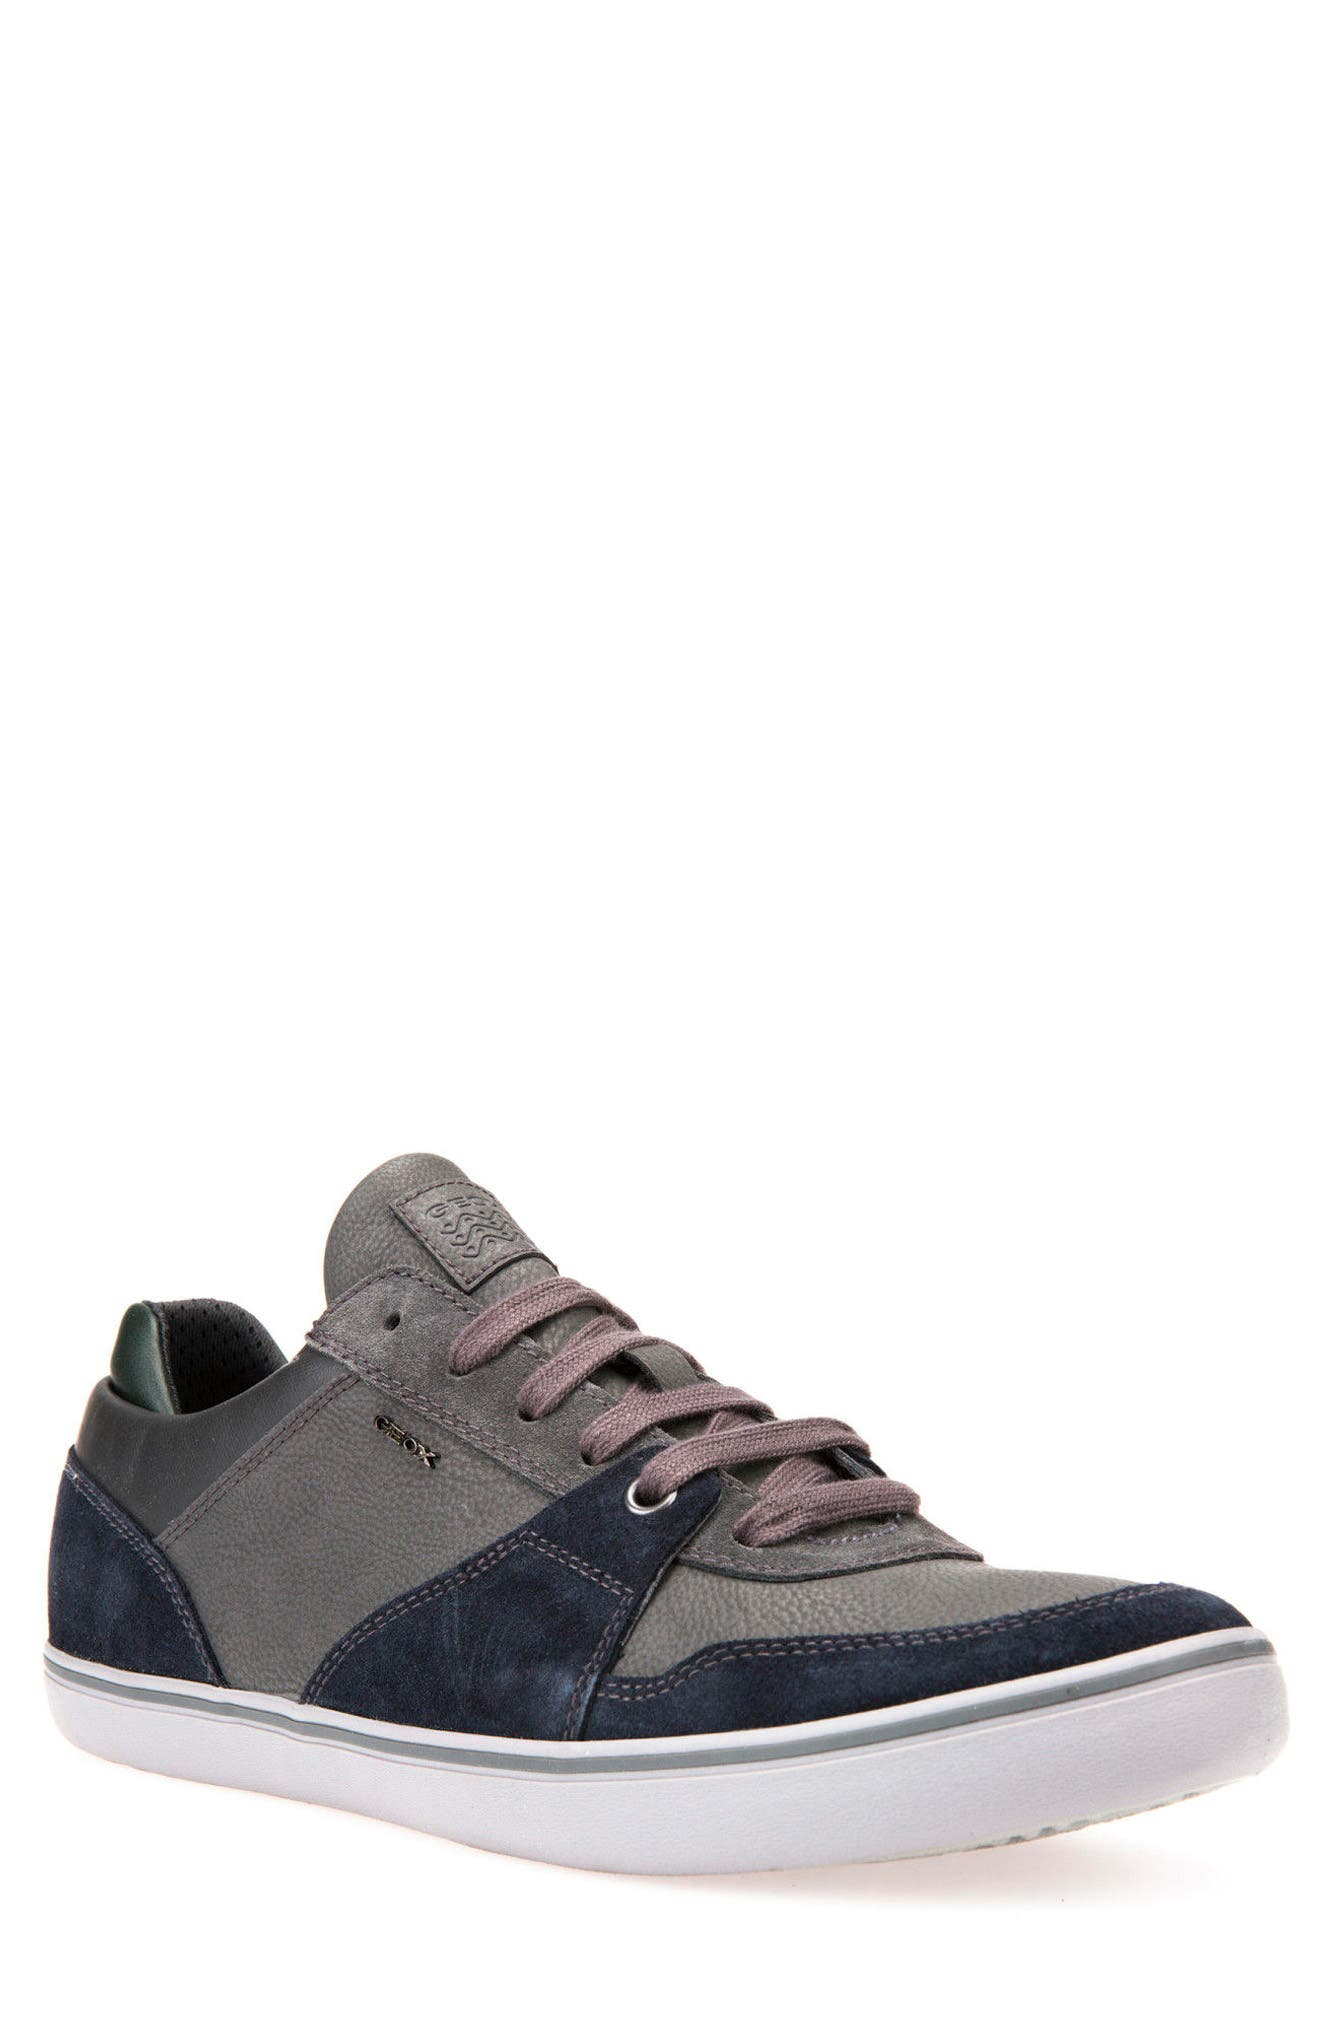 Geox Box 26 Low Top Sneaker (Men)